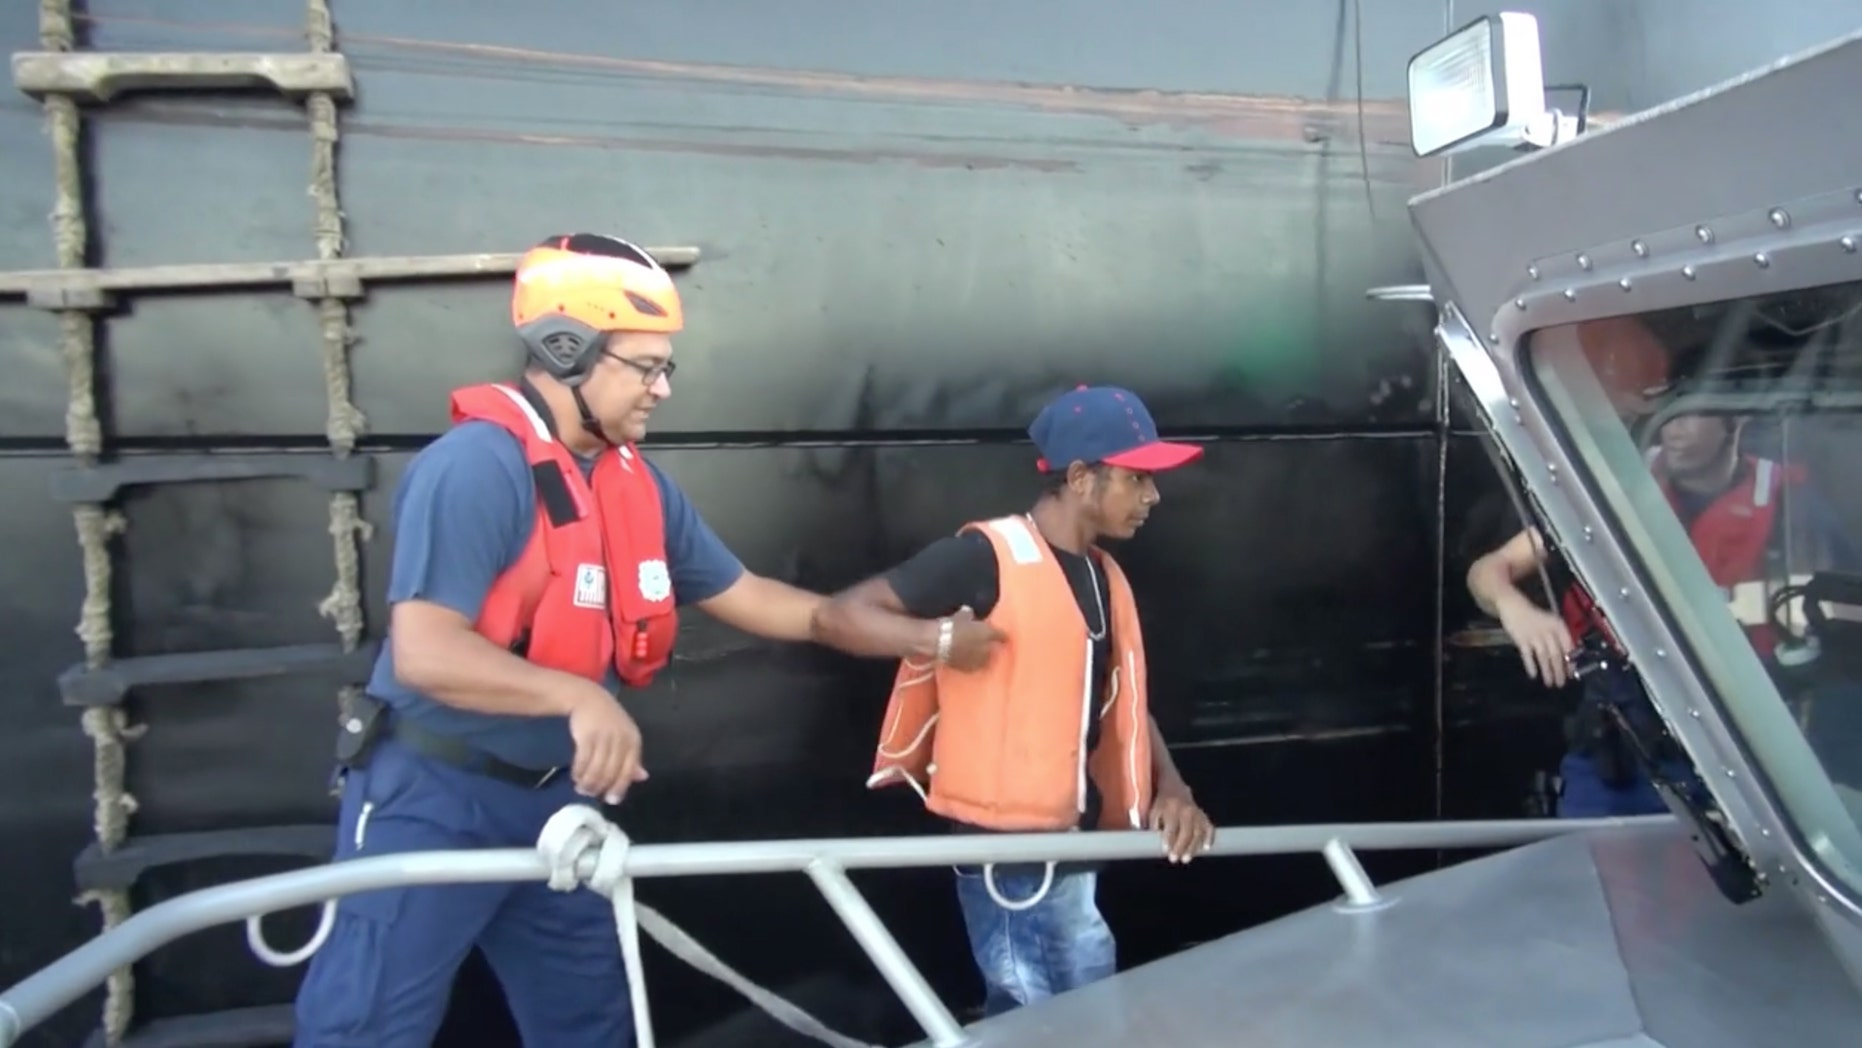 In this Wednesday, May 4, 2016 image taken from video, an unidentified mariner, center, is helped onto a U.S. Coast Guard cutter after being rescued at sea more than 2,000 miles southeast of Hawaii. The Colombian man survived a two-month ordeal in the Pacific by eating fish and seagulls, the U.S. Coast Guard said. (U.S. Coast Guard via AP)